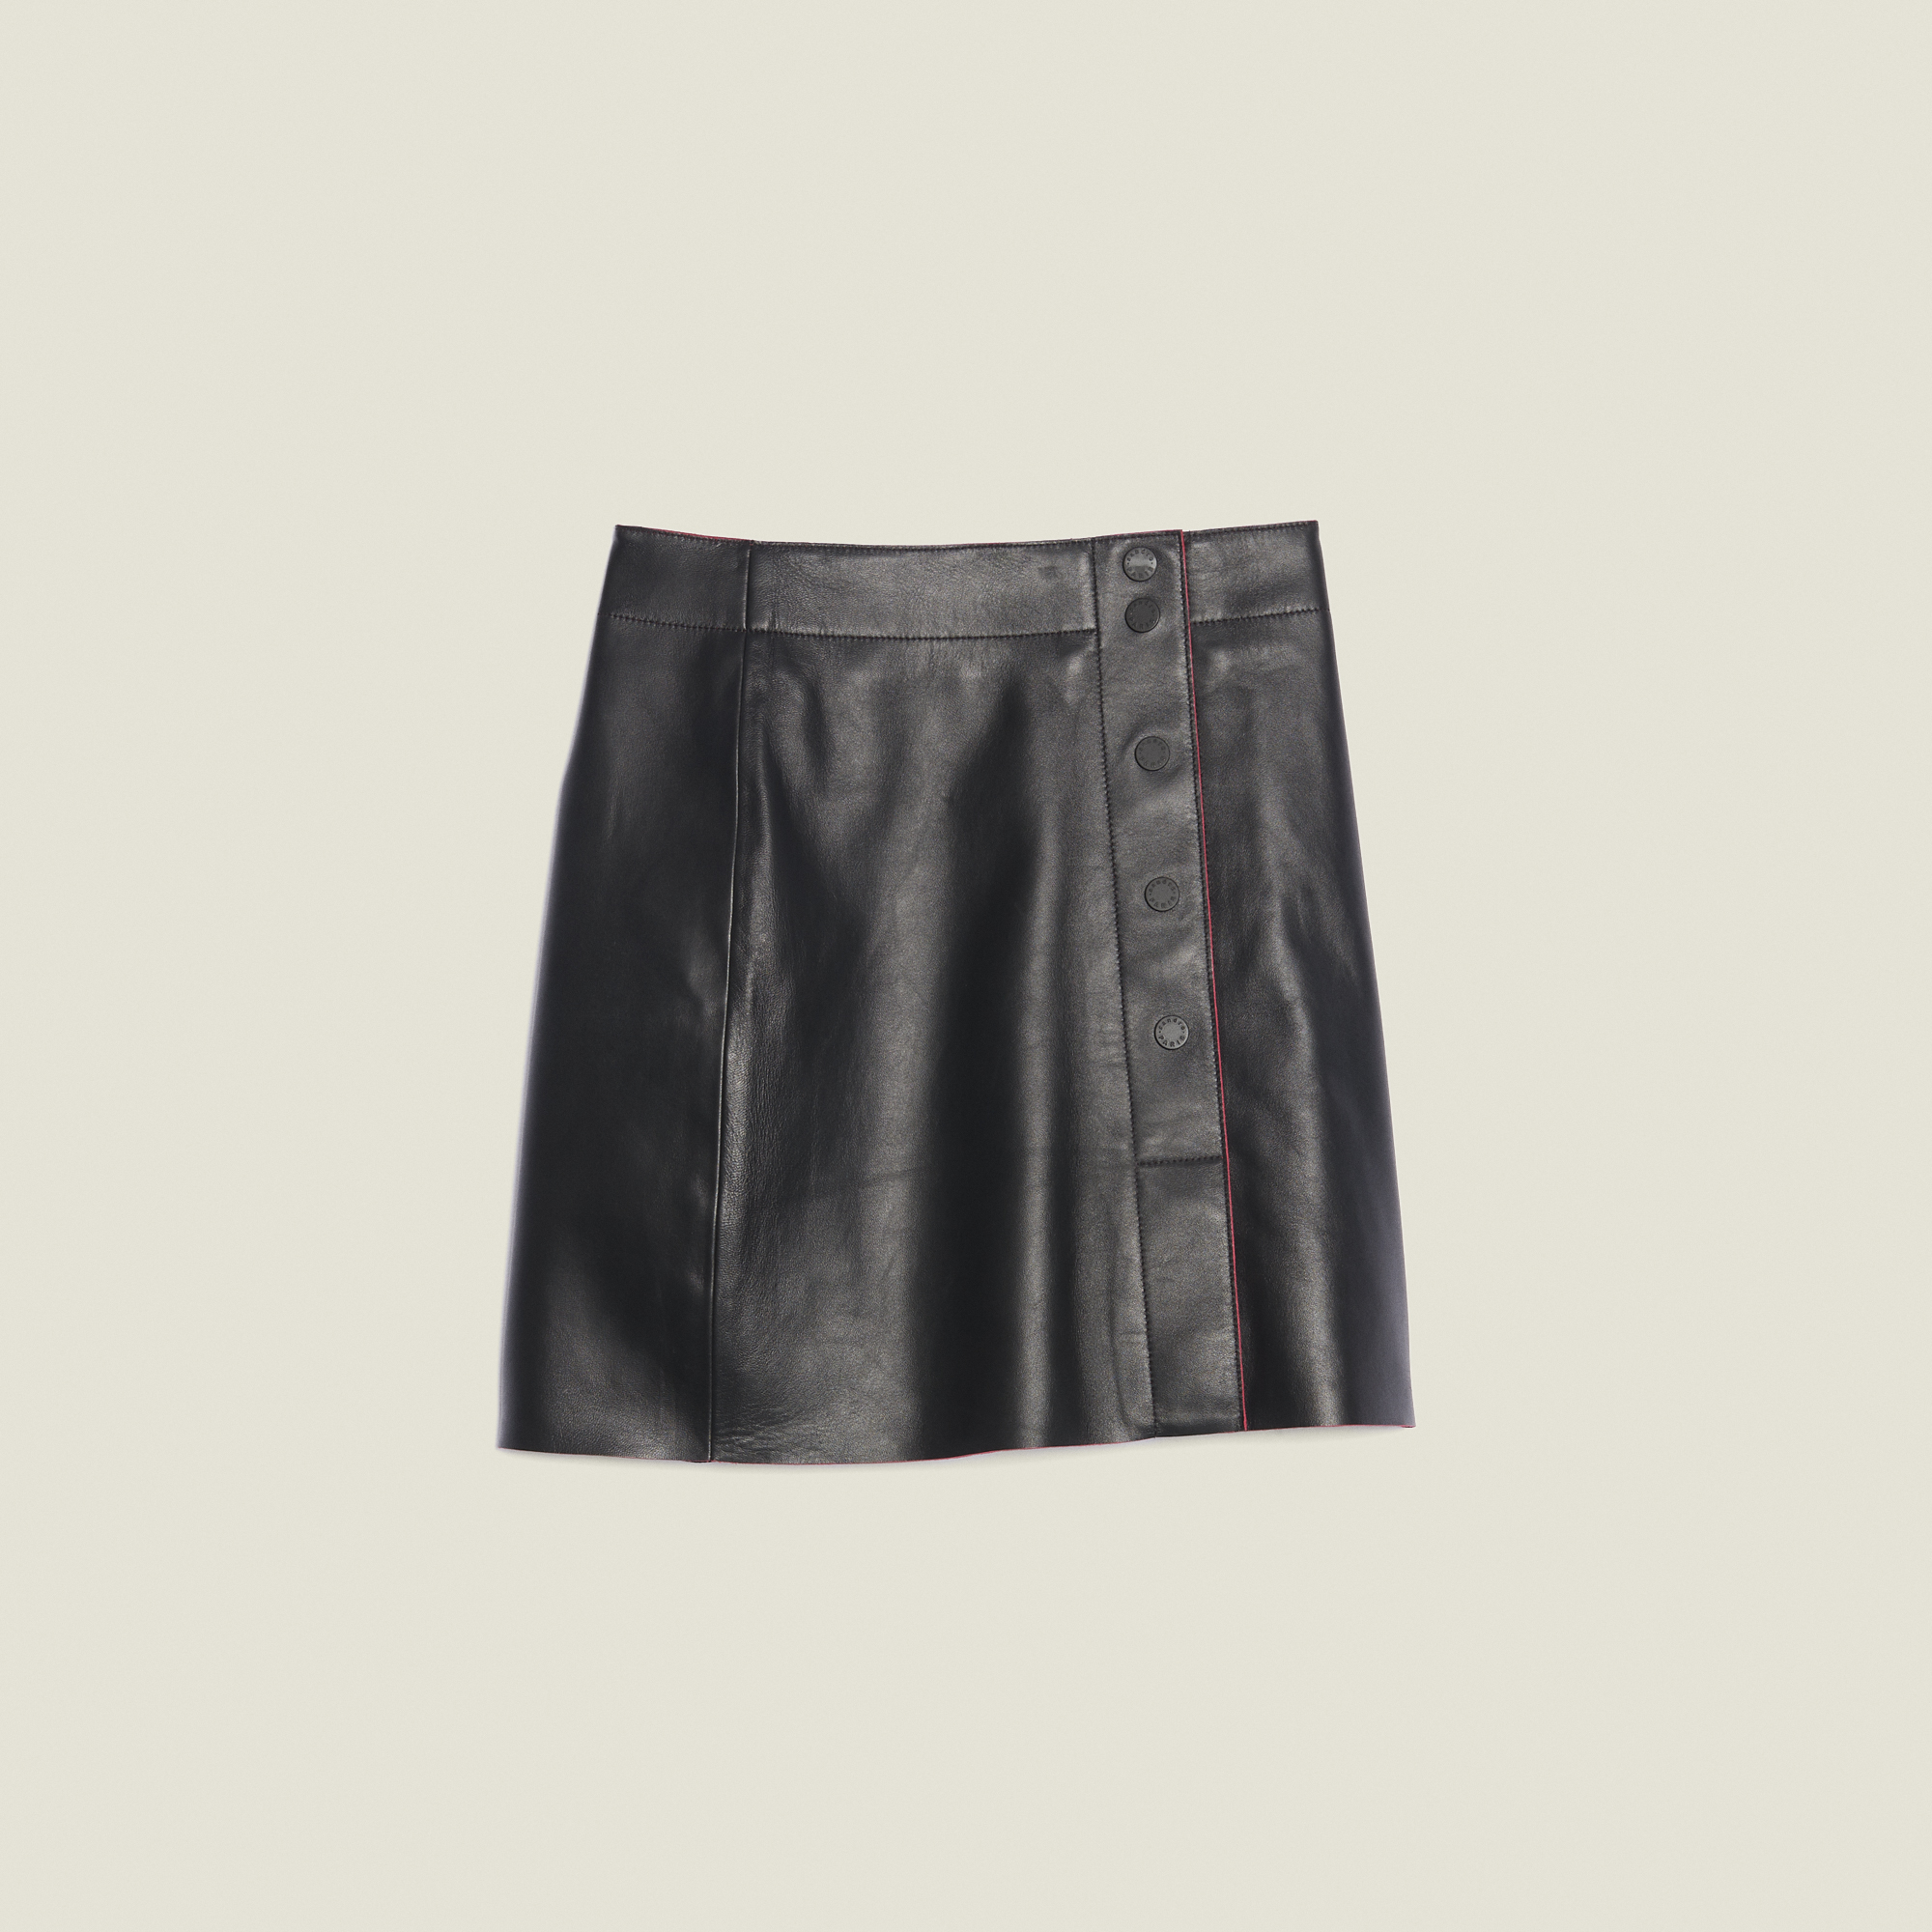 48f5e5db56 ... A-Line Leather Skirt : Skirts color Black